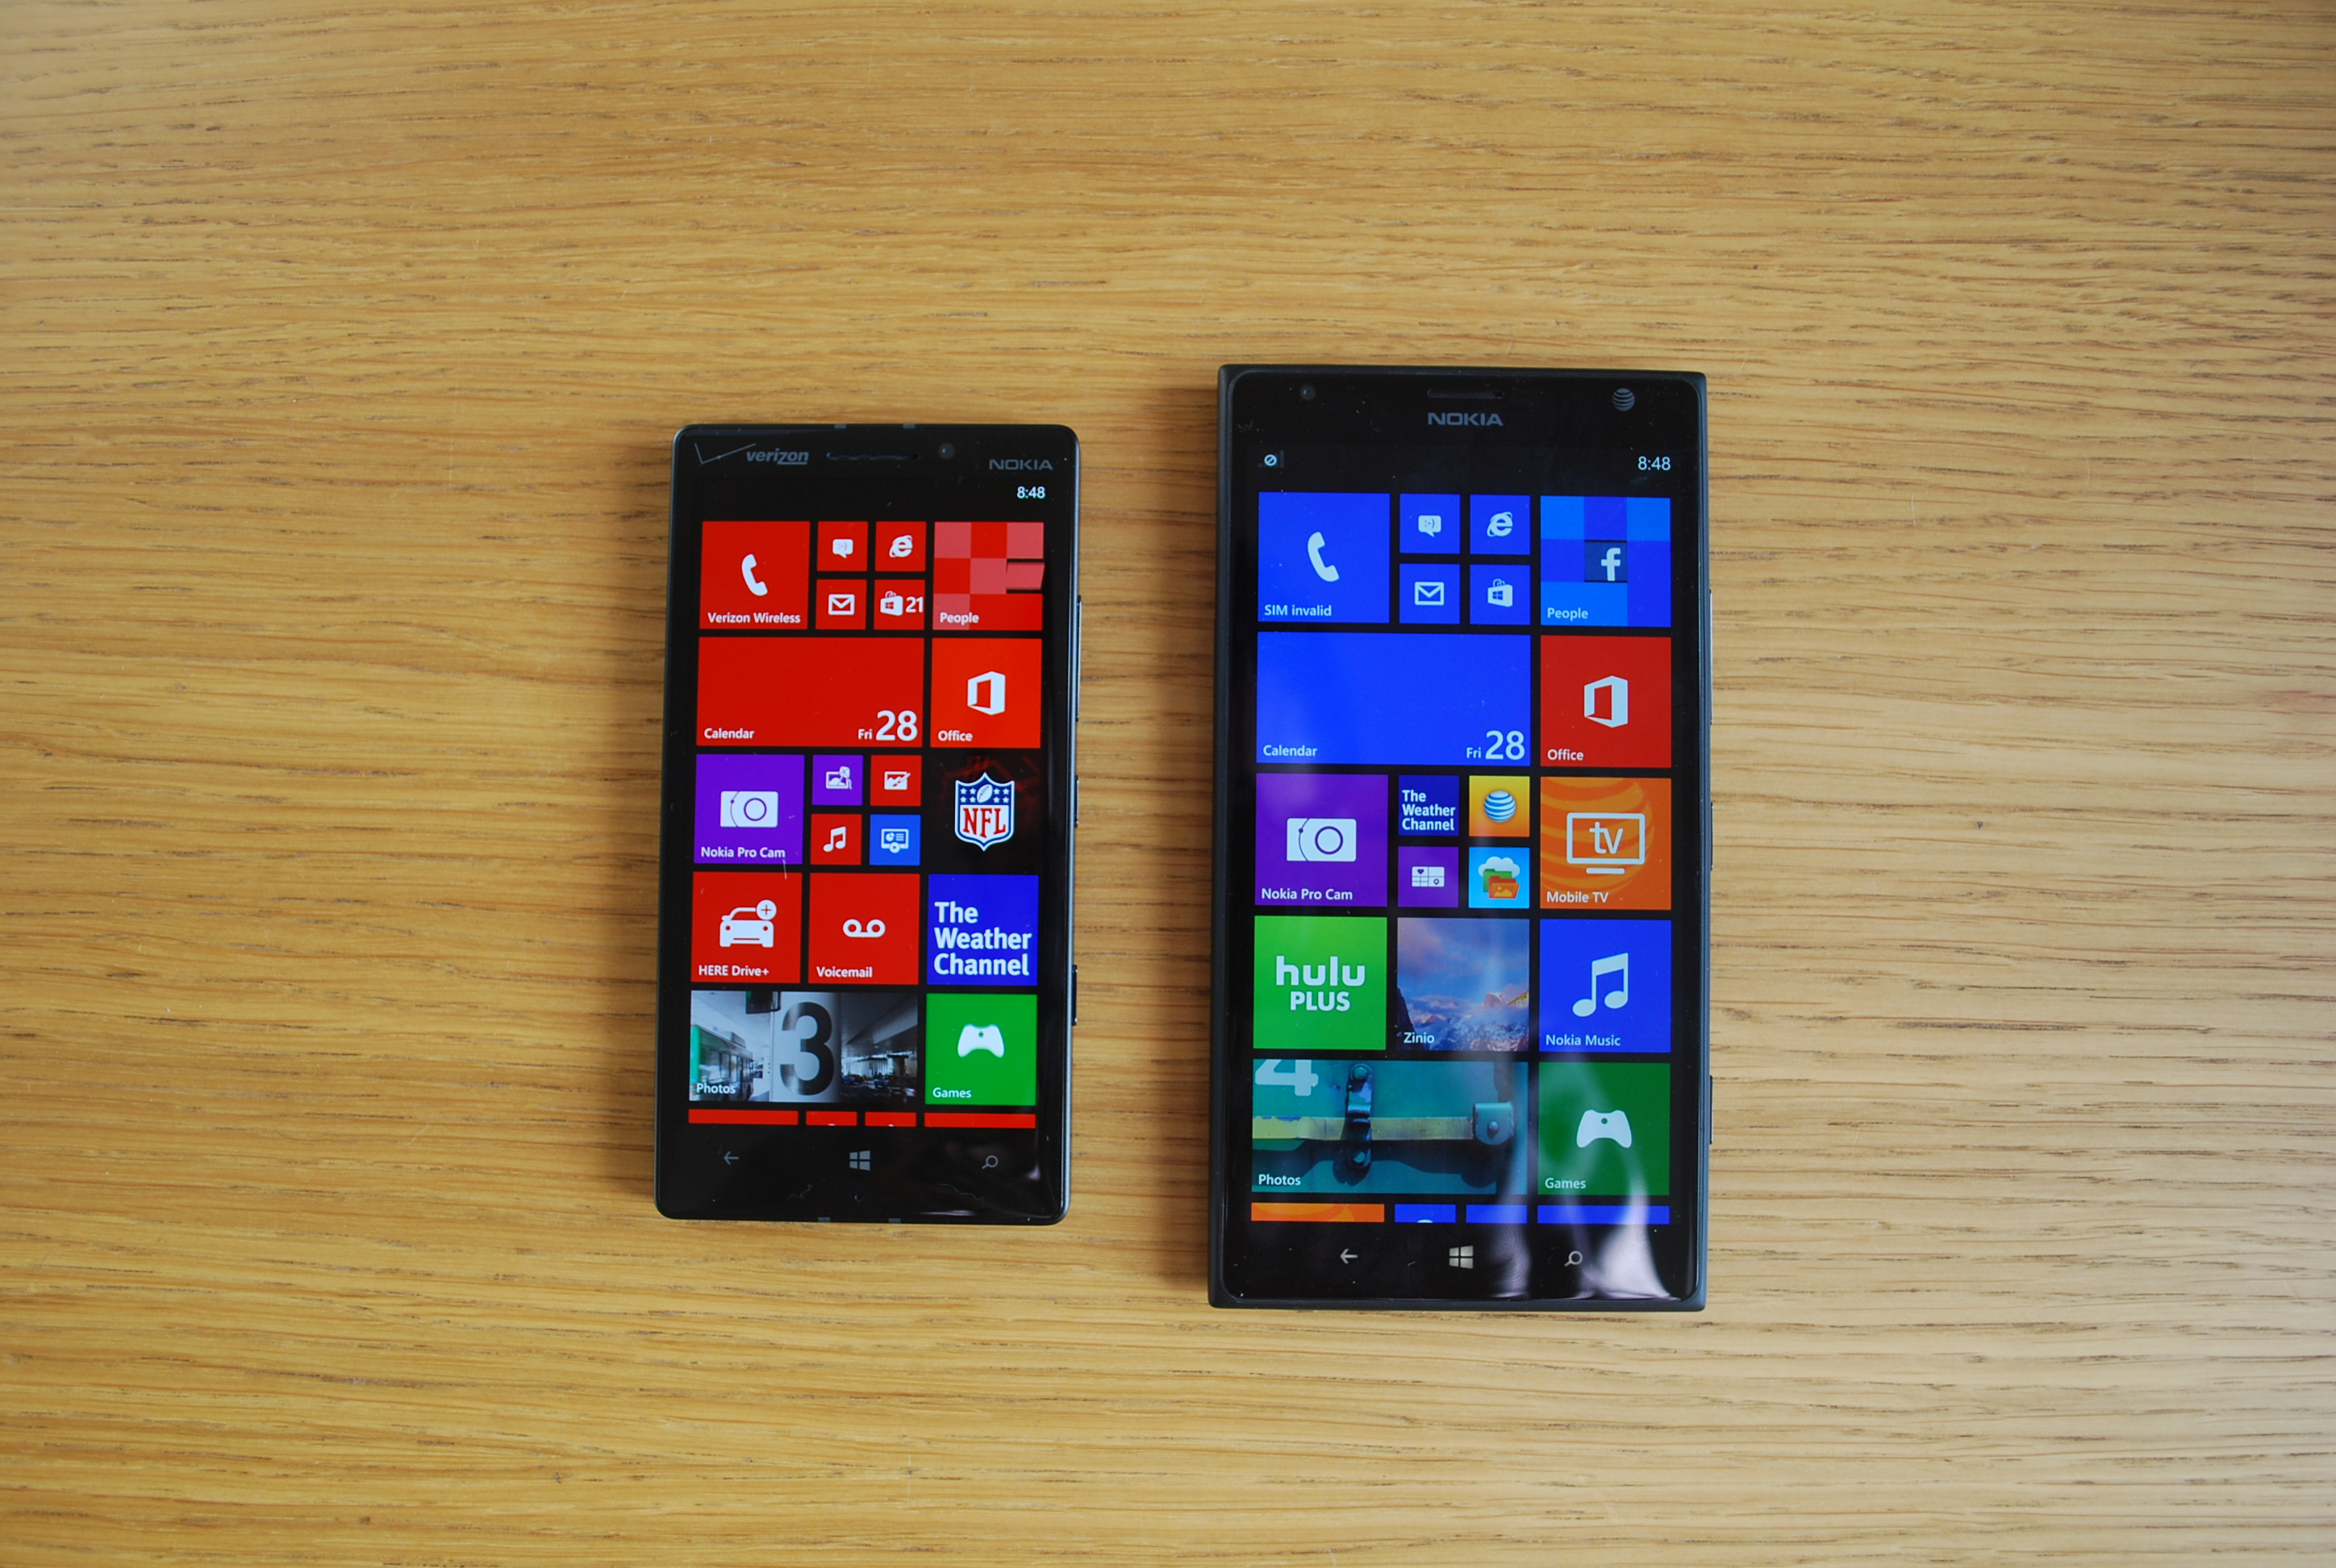 Lumia Icon vs Lumia 1520